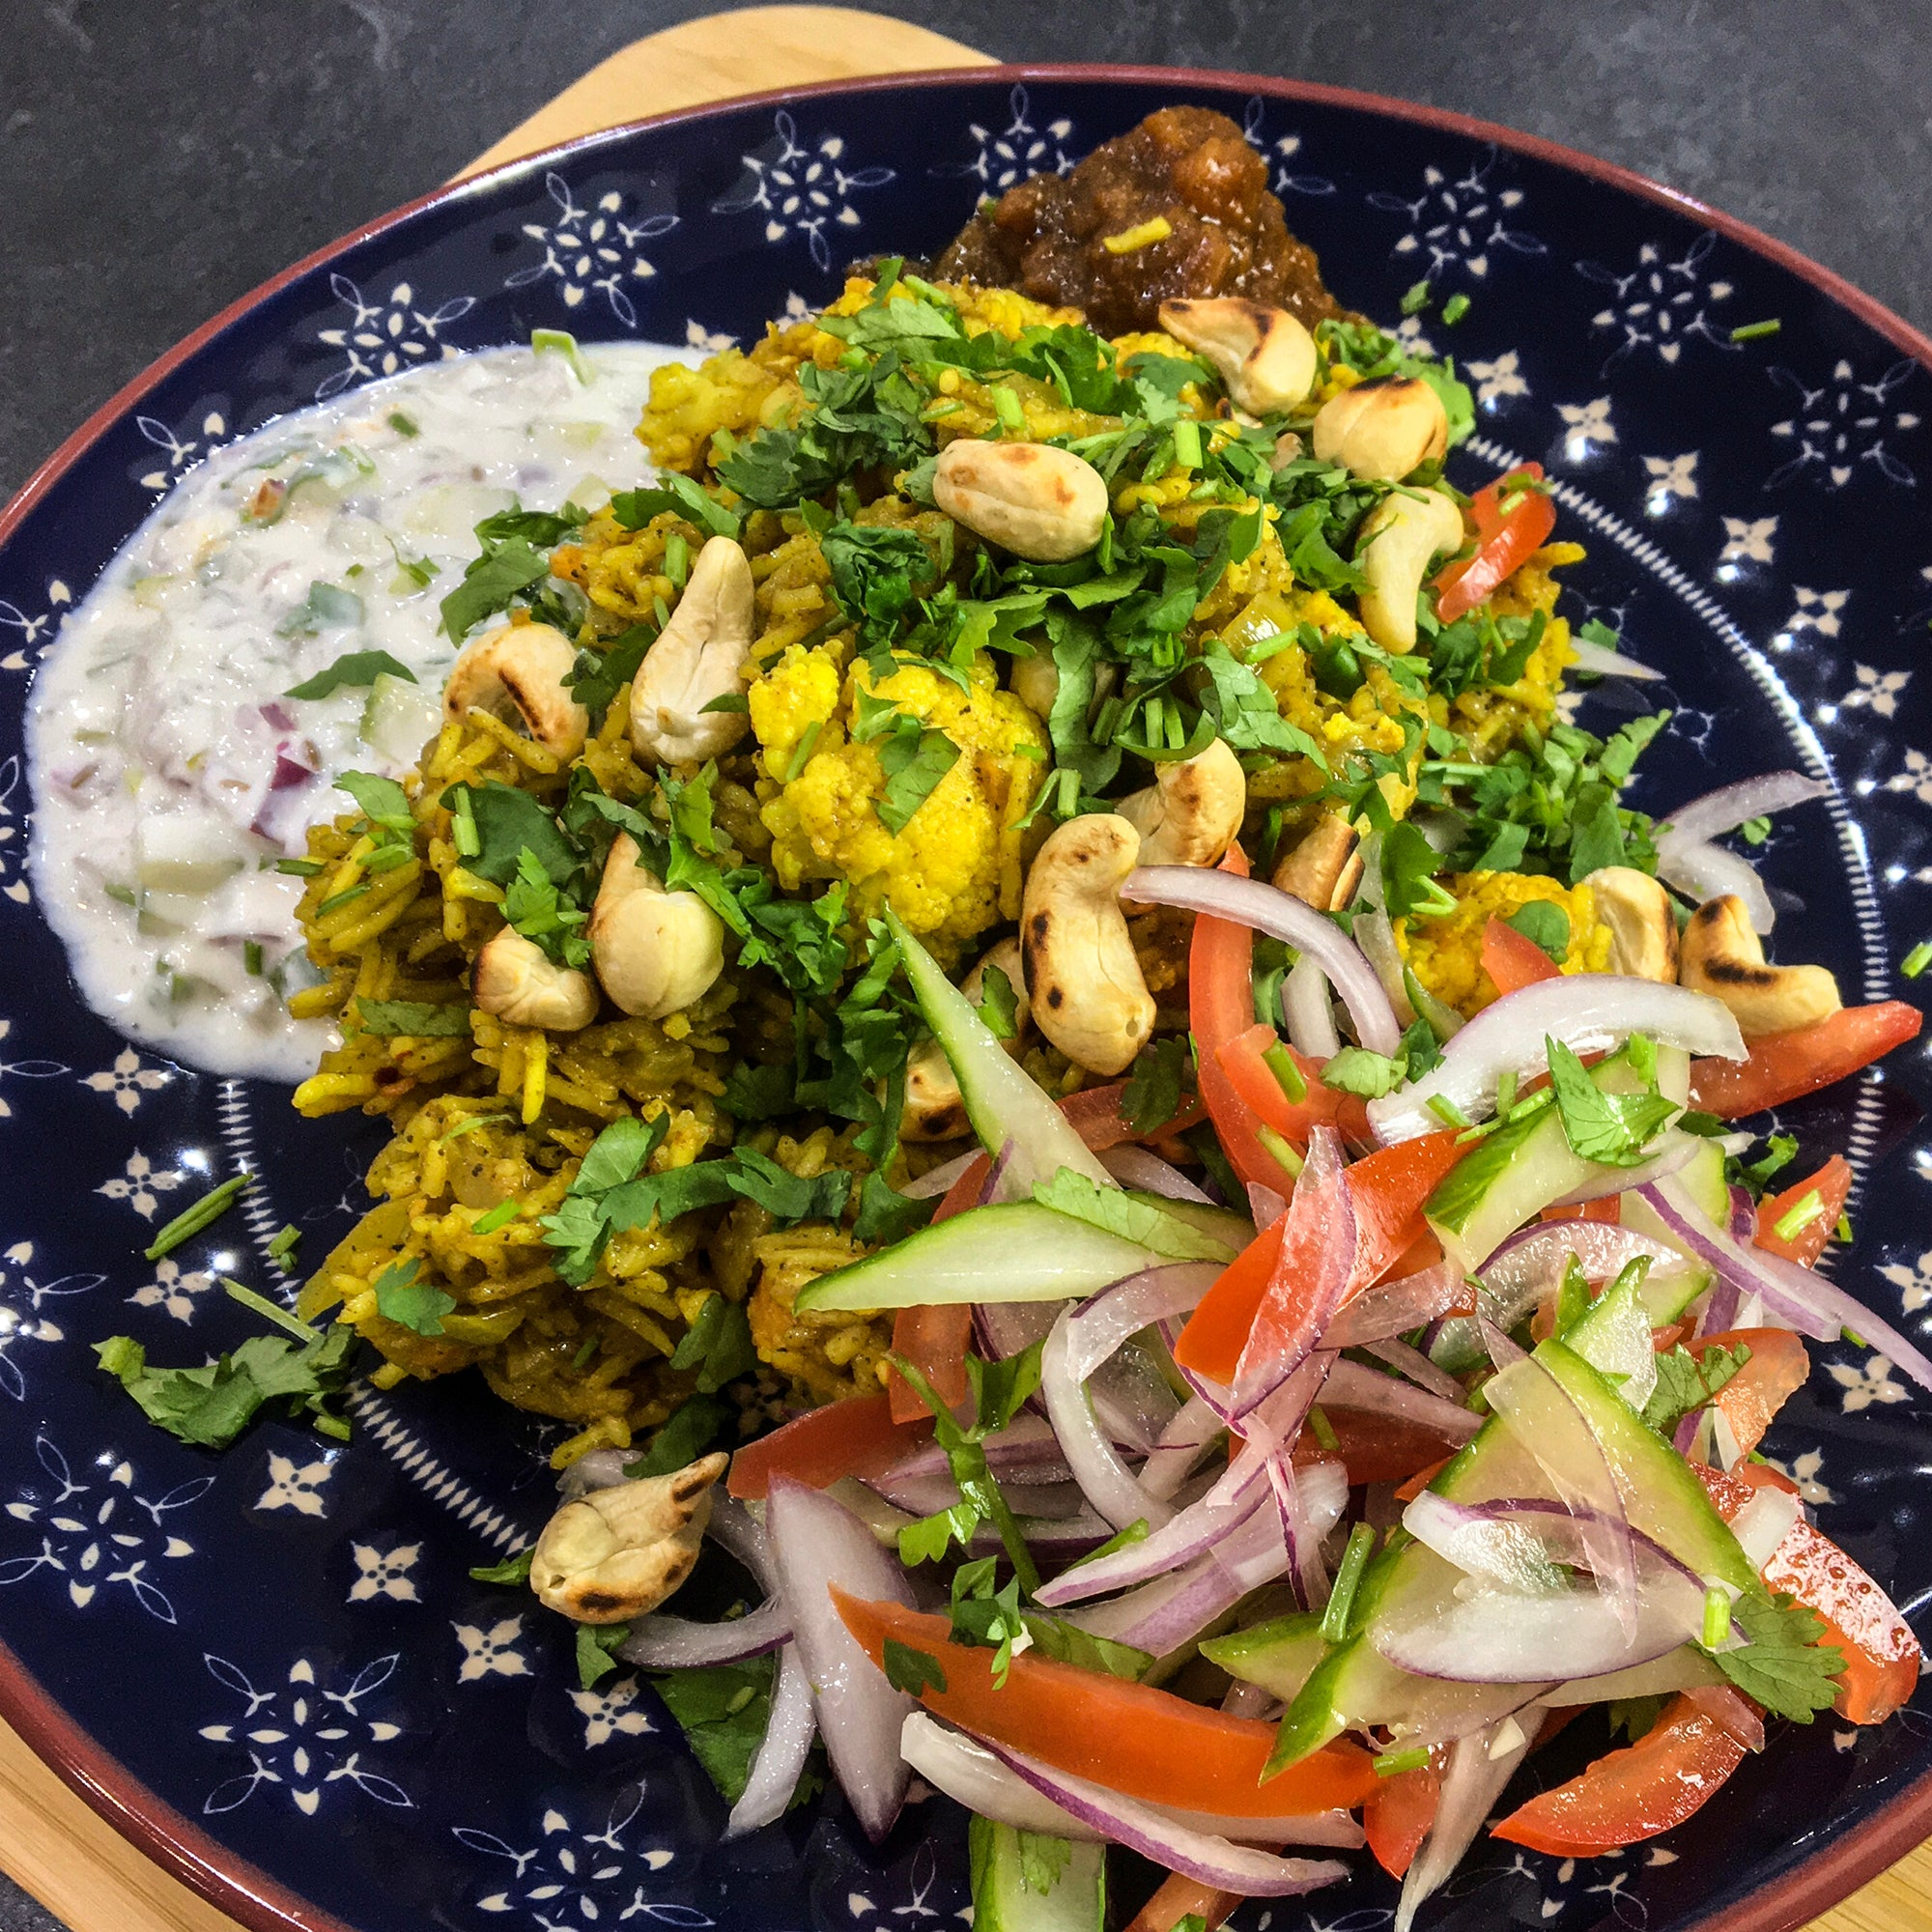 Cauliflower & Sweet Potato Biryani with Roasted Cashew Nuts